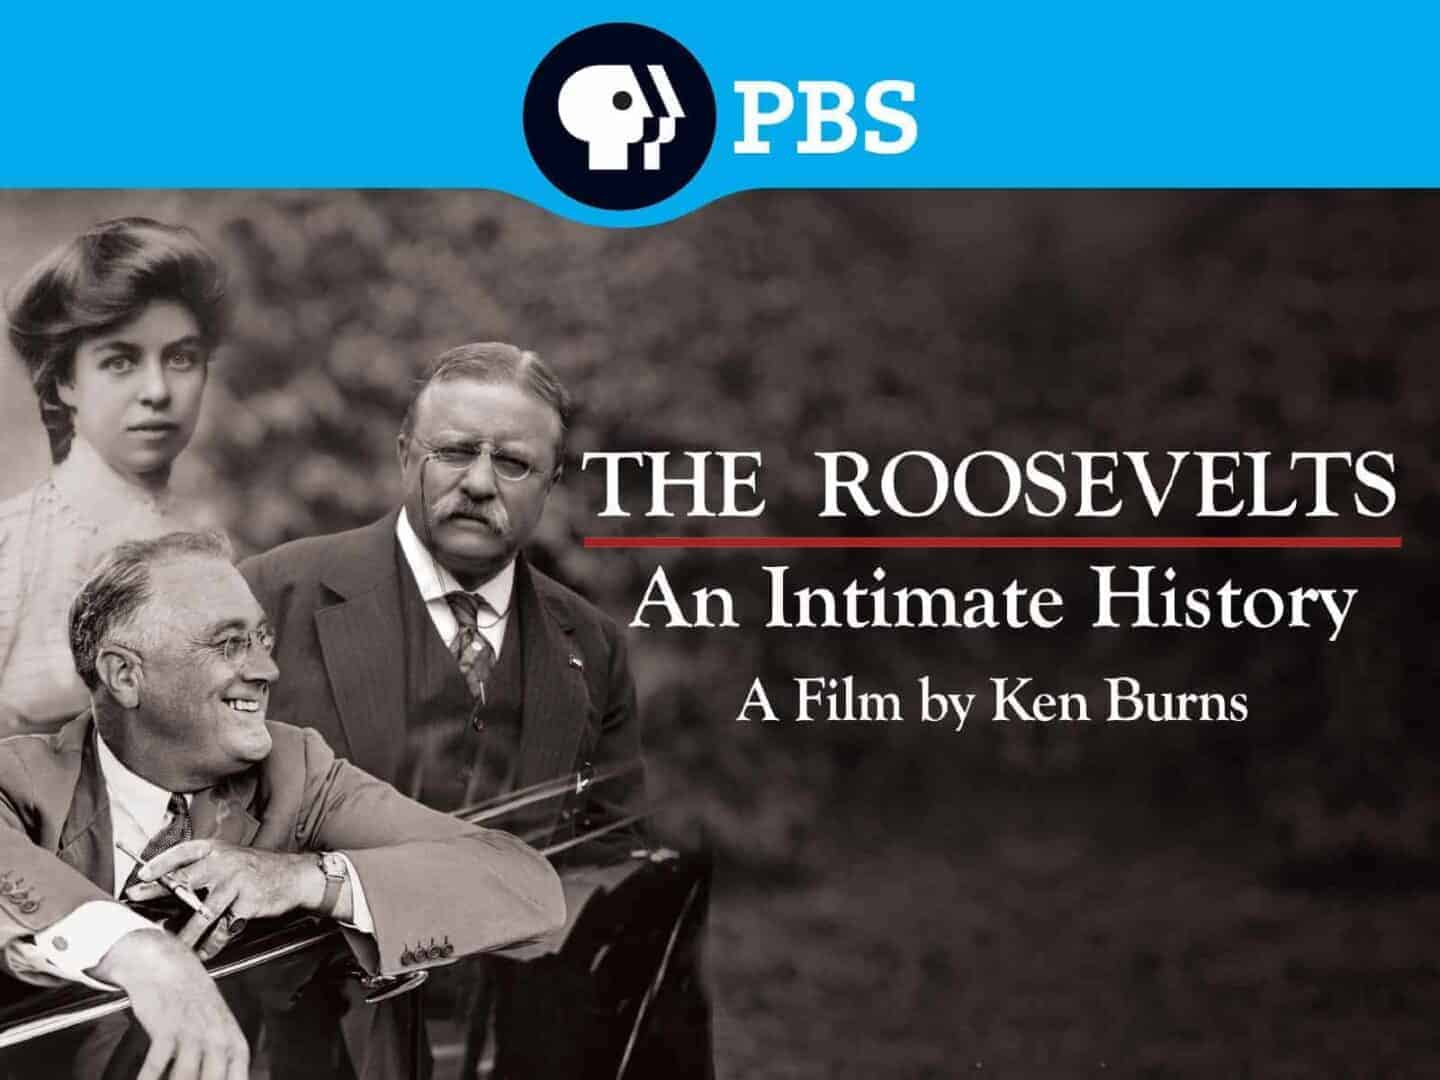 the roosevelts documentary netflix